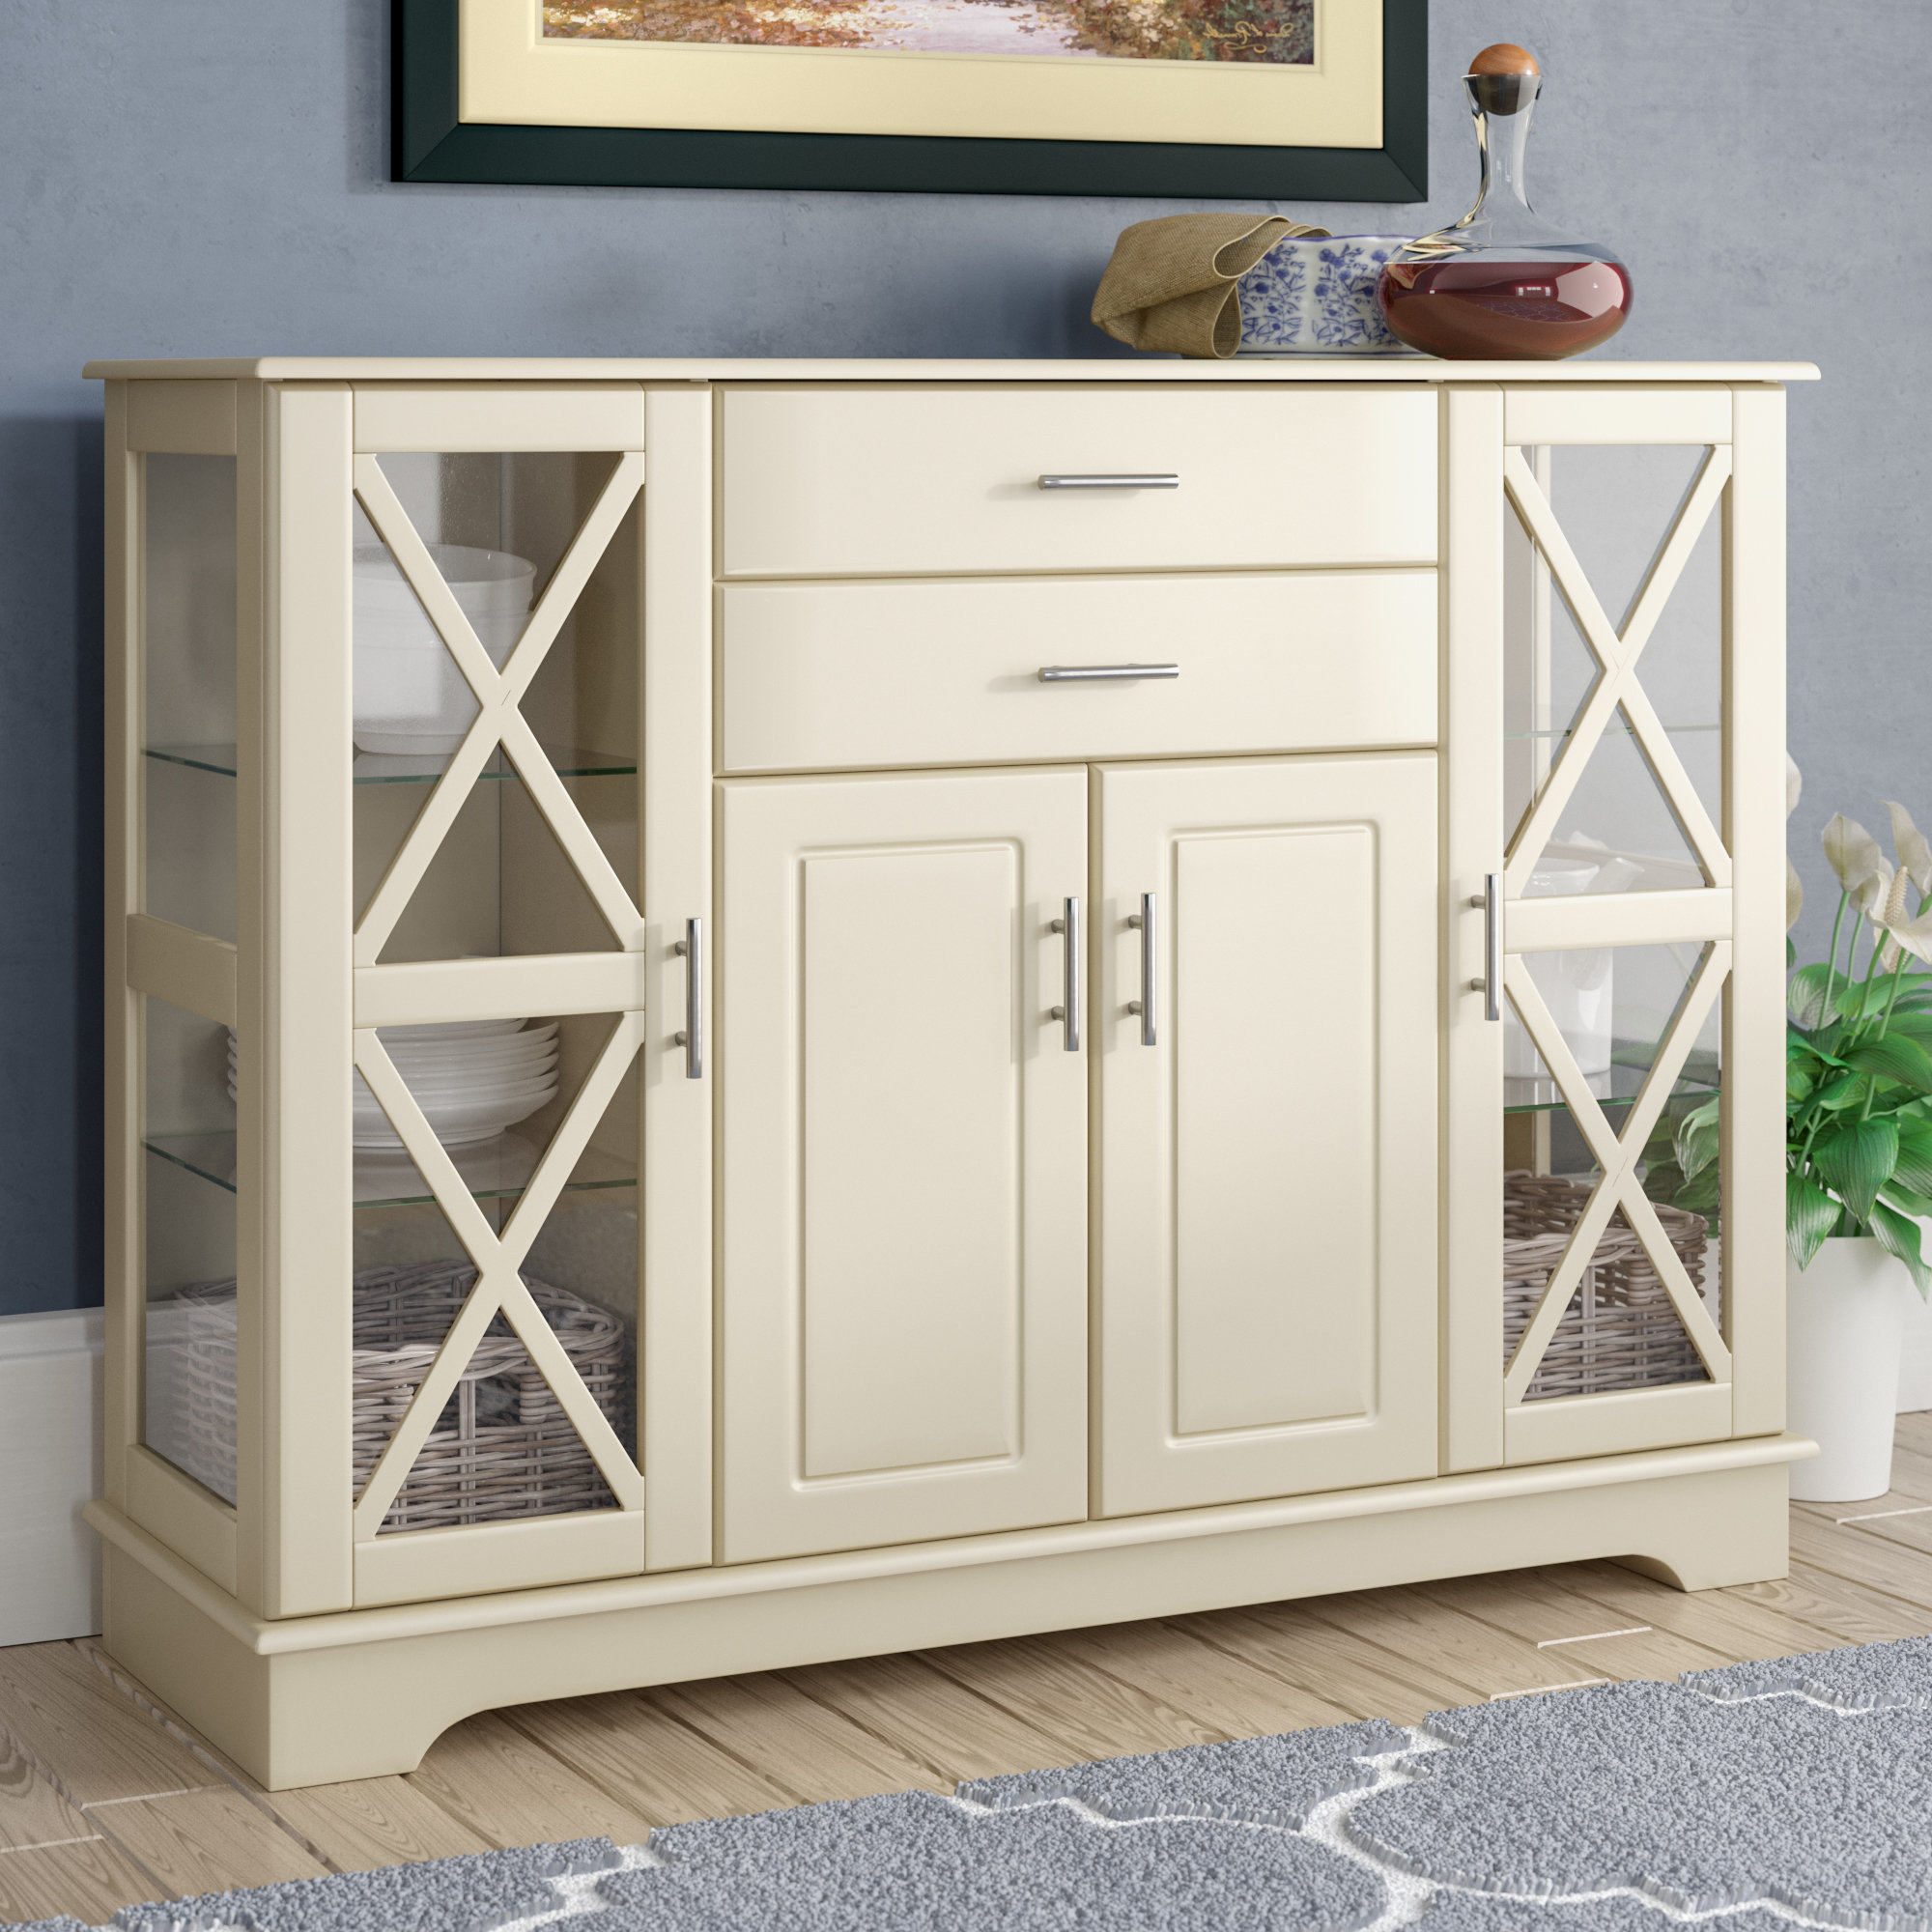 Narrow Dining Room Sideboards | Wayfair Pertaining To 2017 Pineville Dining Sideboards (View 12 of 20)